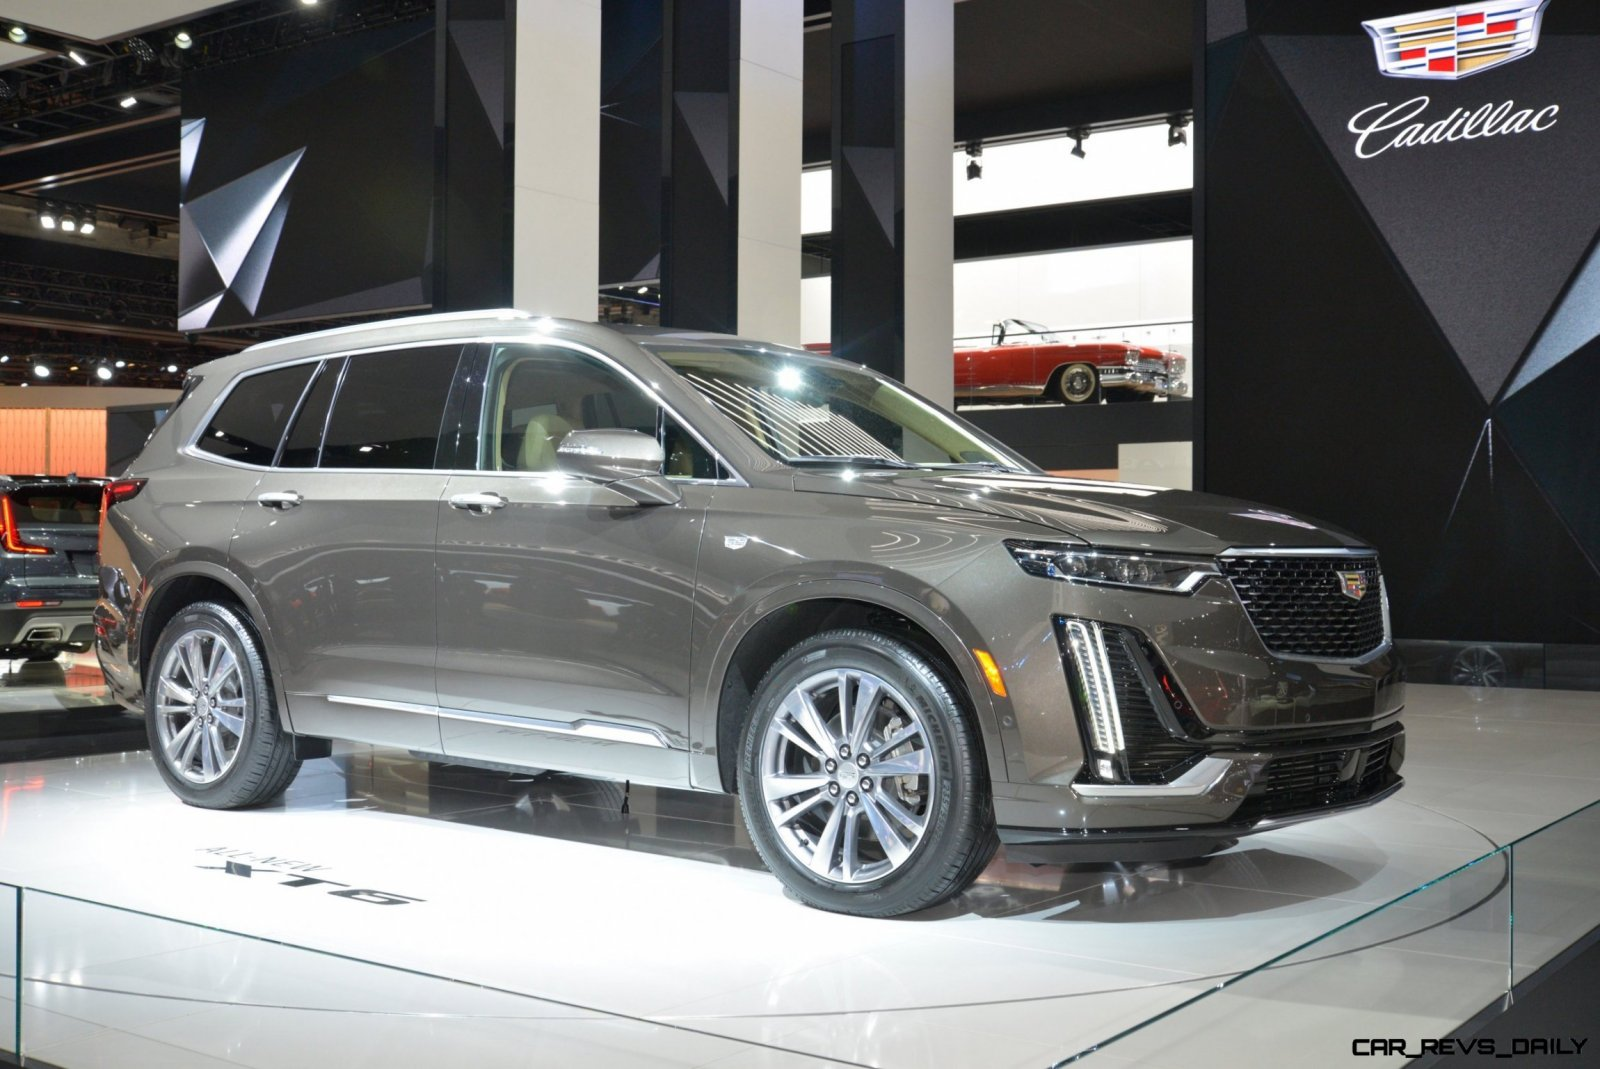 Cuv Car Cadillac Unveils Three Row 2020 Xt6 Cuv Ahead Of Naias 7 Seat